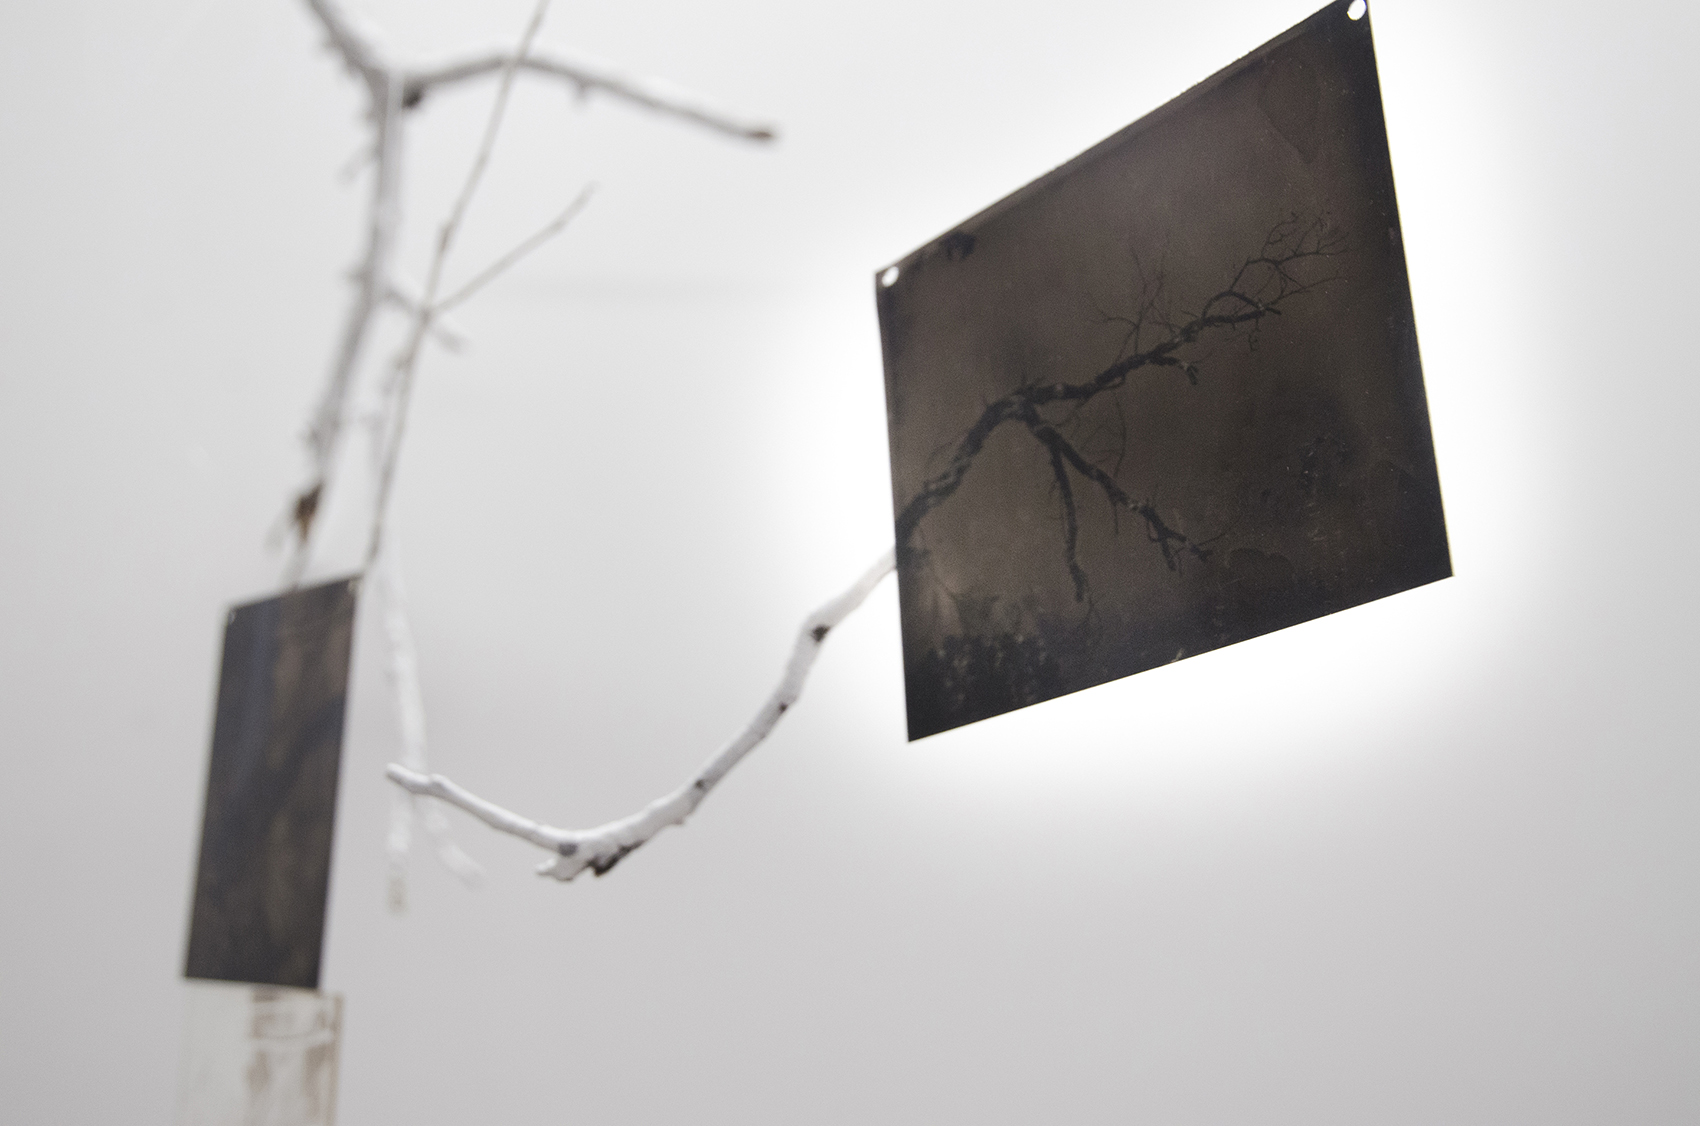 photo of Wispobish art installation featuring tree branches and wet plate collodion photography